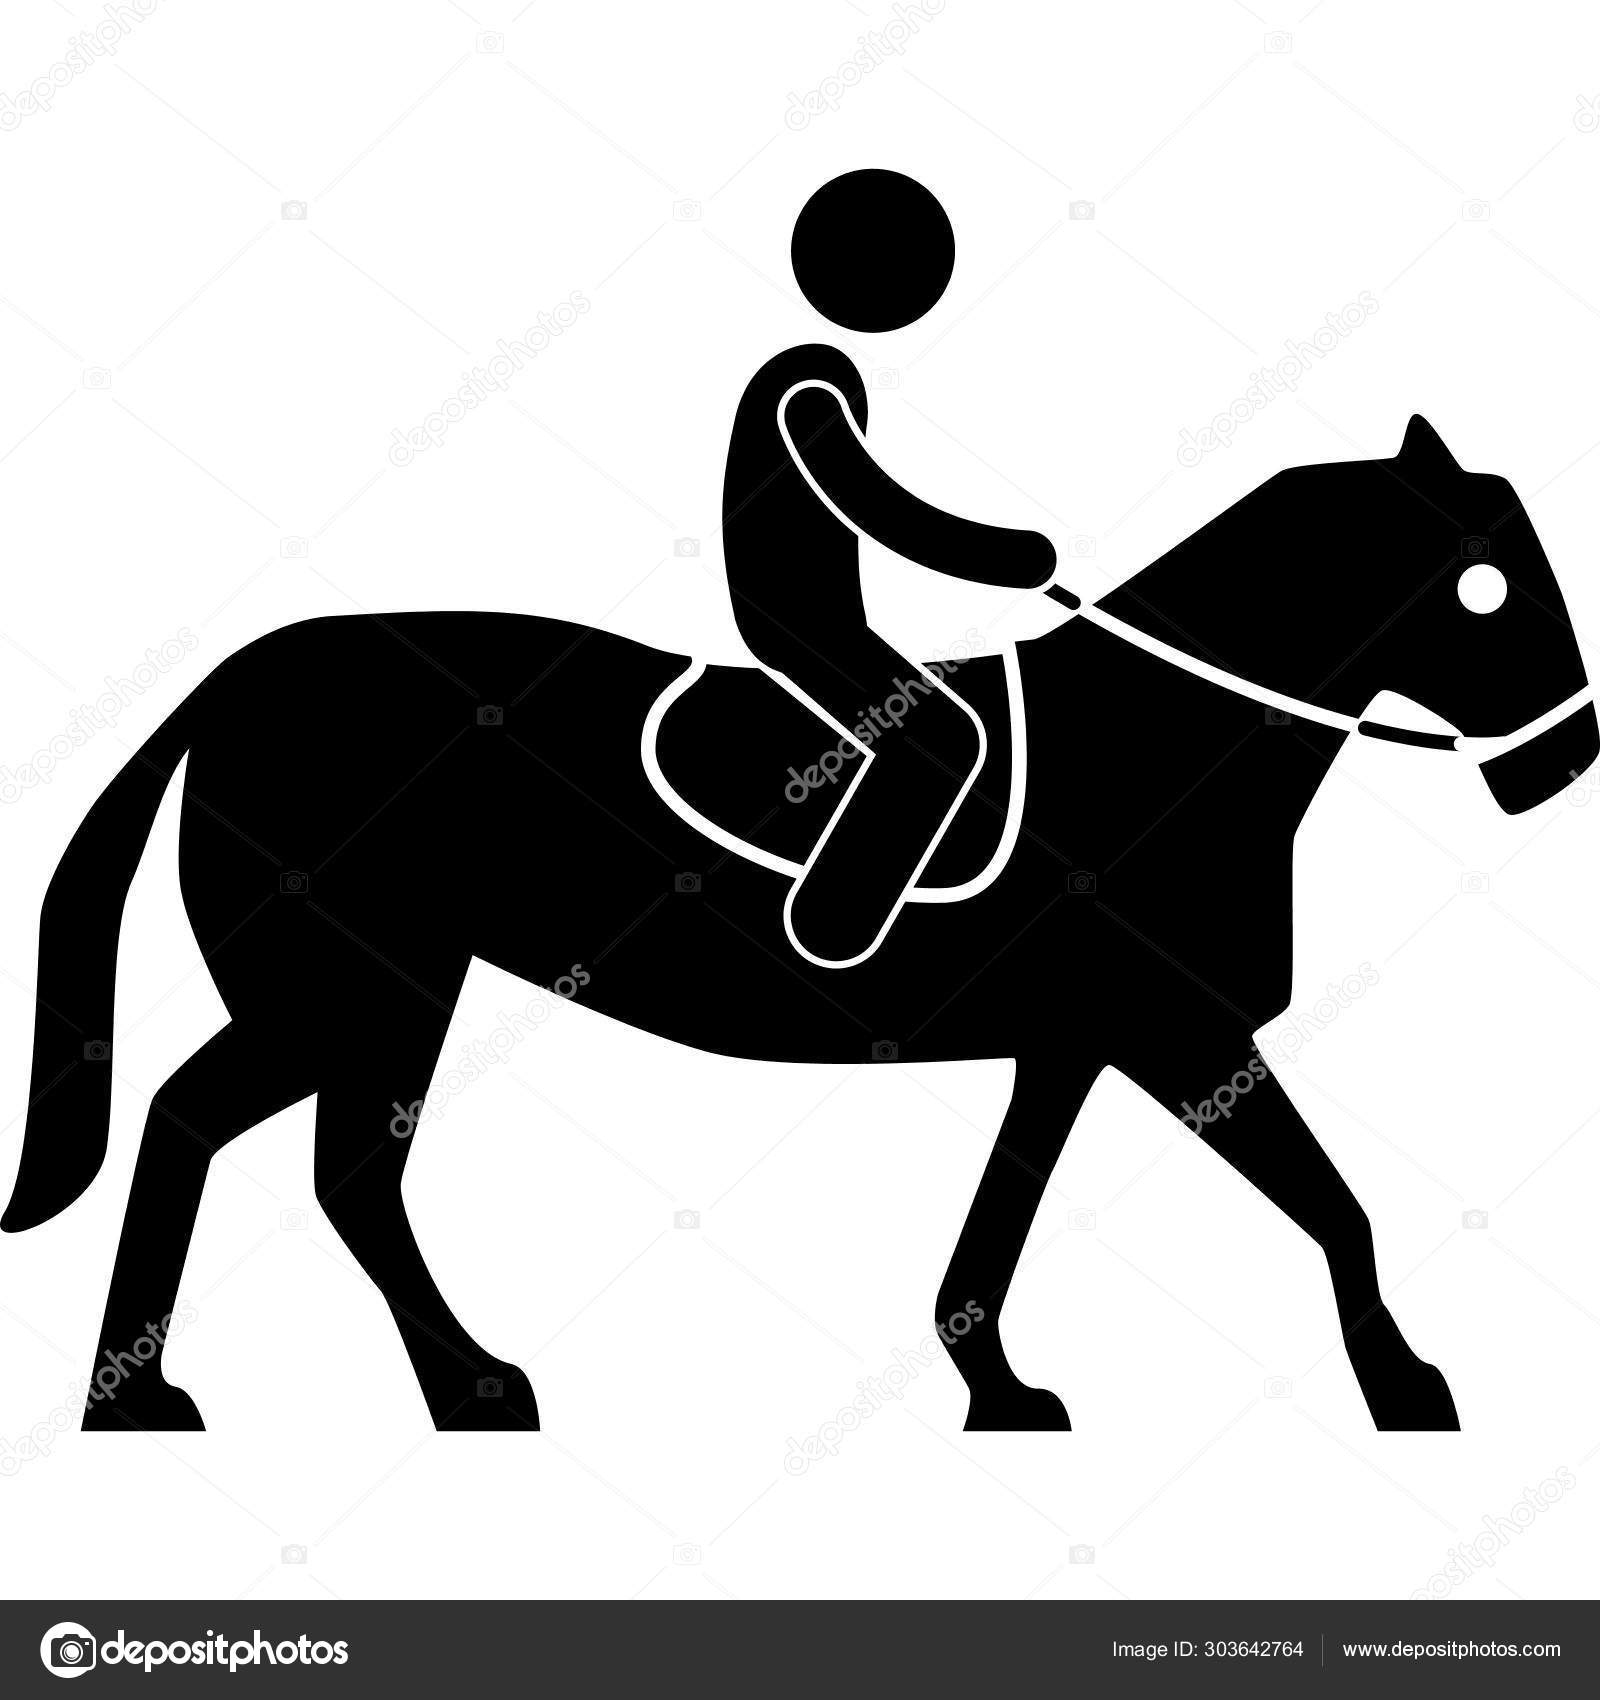 Horse Riding Simple Illustration Stock Vector C Iconscout 303642764